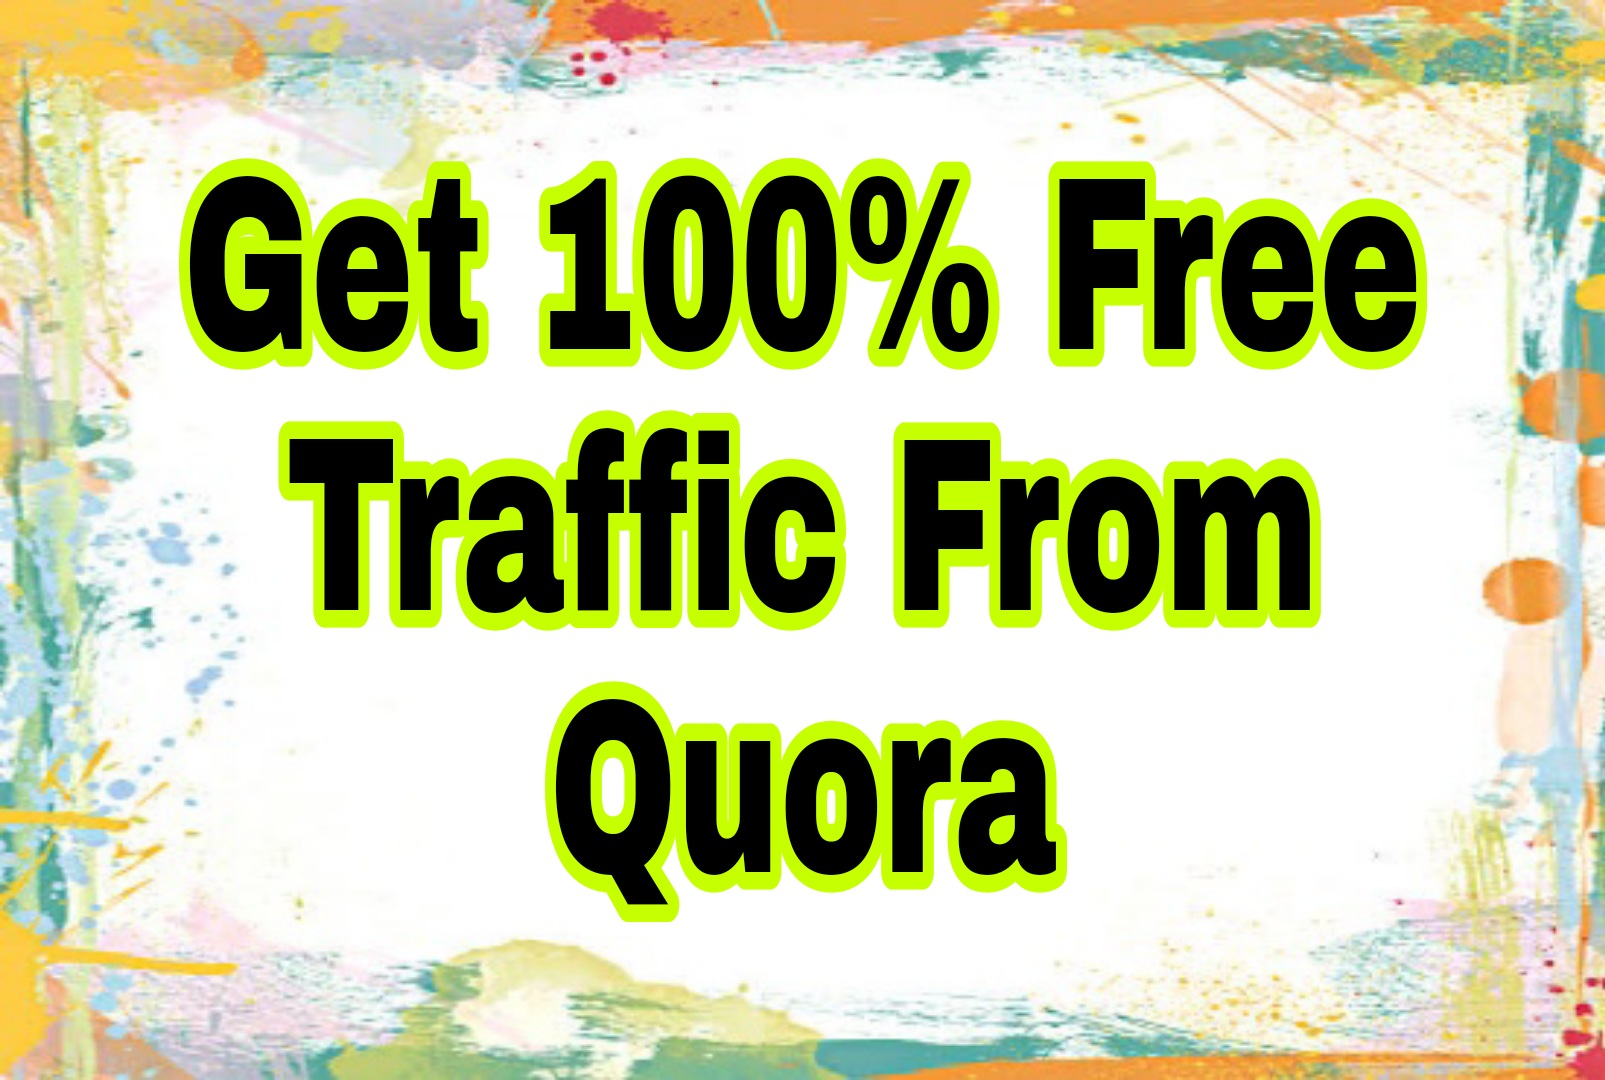 In a quick time I serve 25 quora answer with organic traffic.